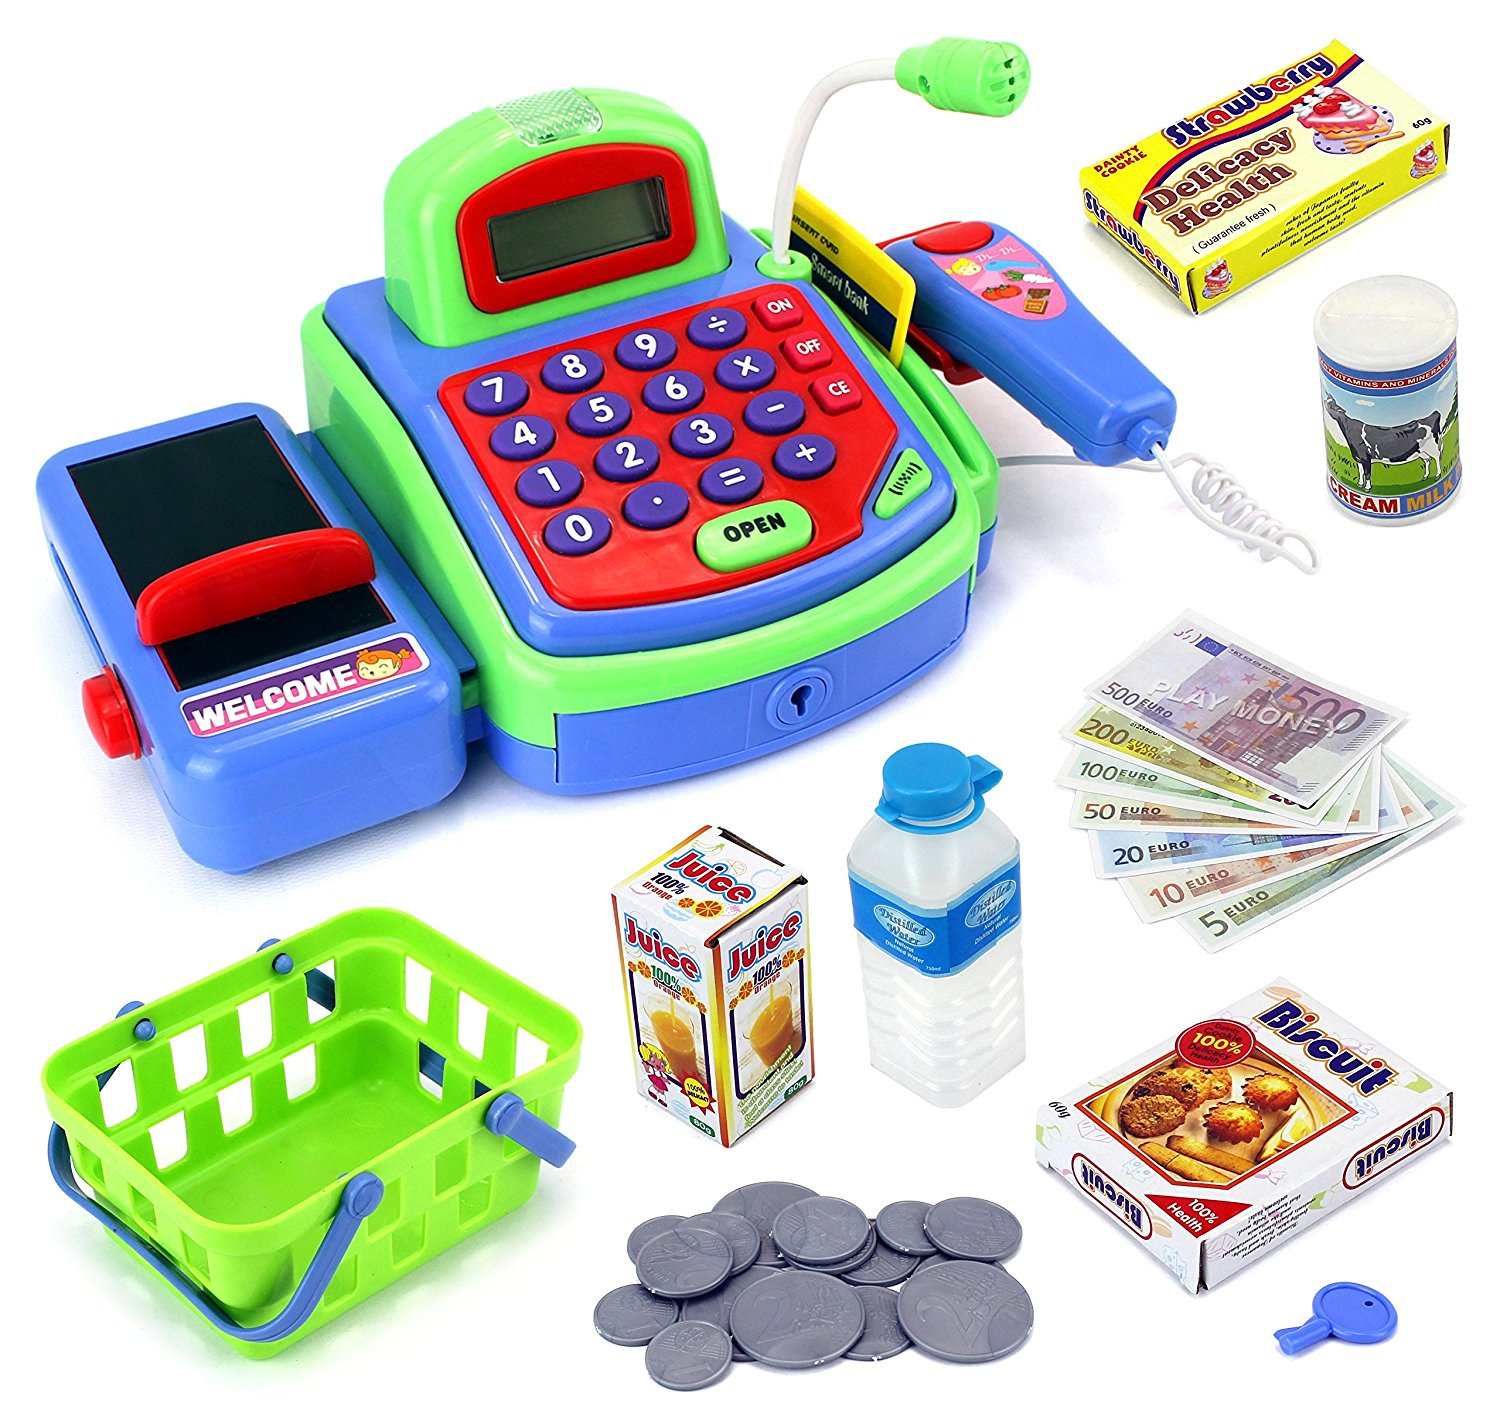 Imagine Multi-functional Educational Pretend Play Battery Operated Toy Cash Register w/ Working Calculator and Microphone, Scanner, Money and Credit Card, Groceries (Green)